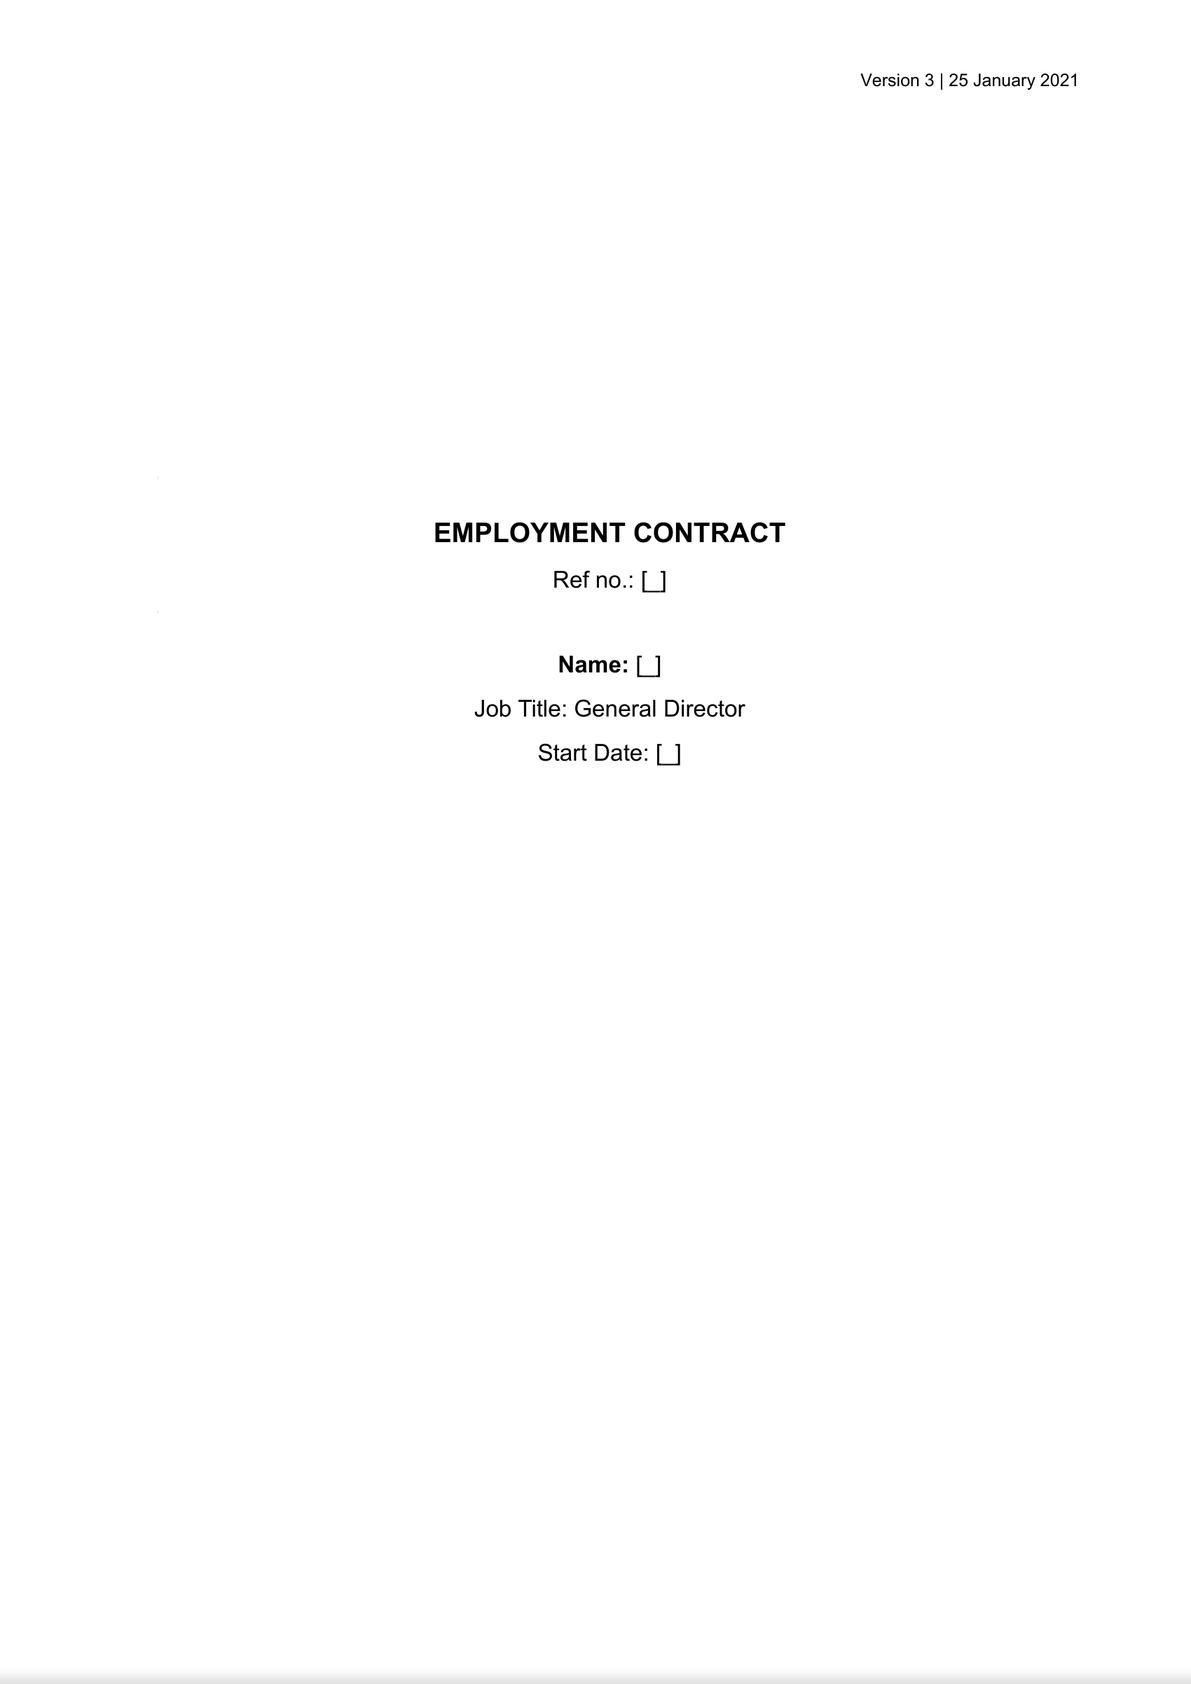 EMPLOYMENT CONTRACT-0